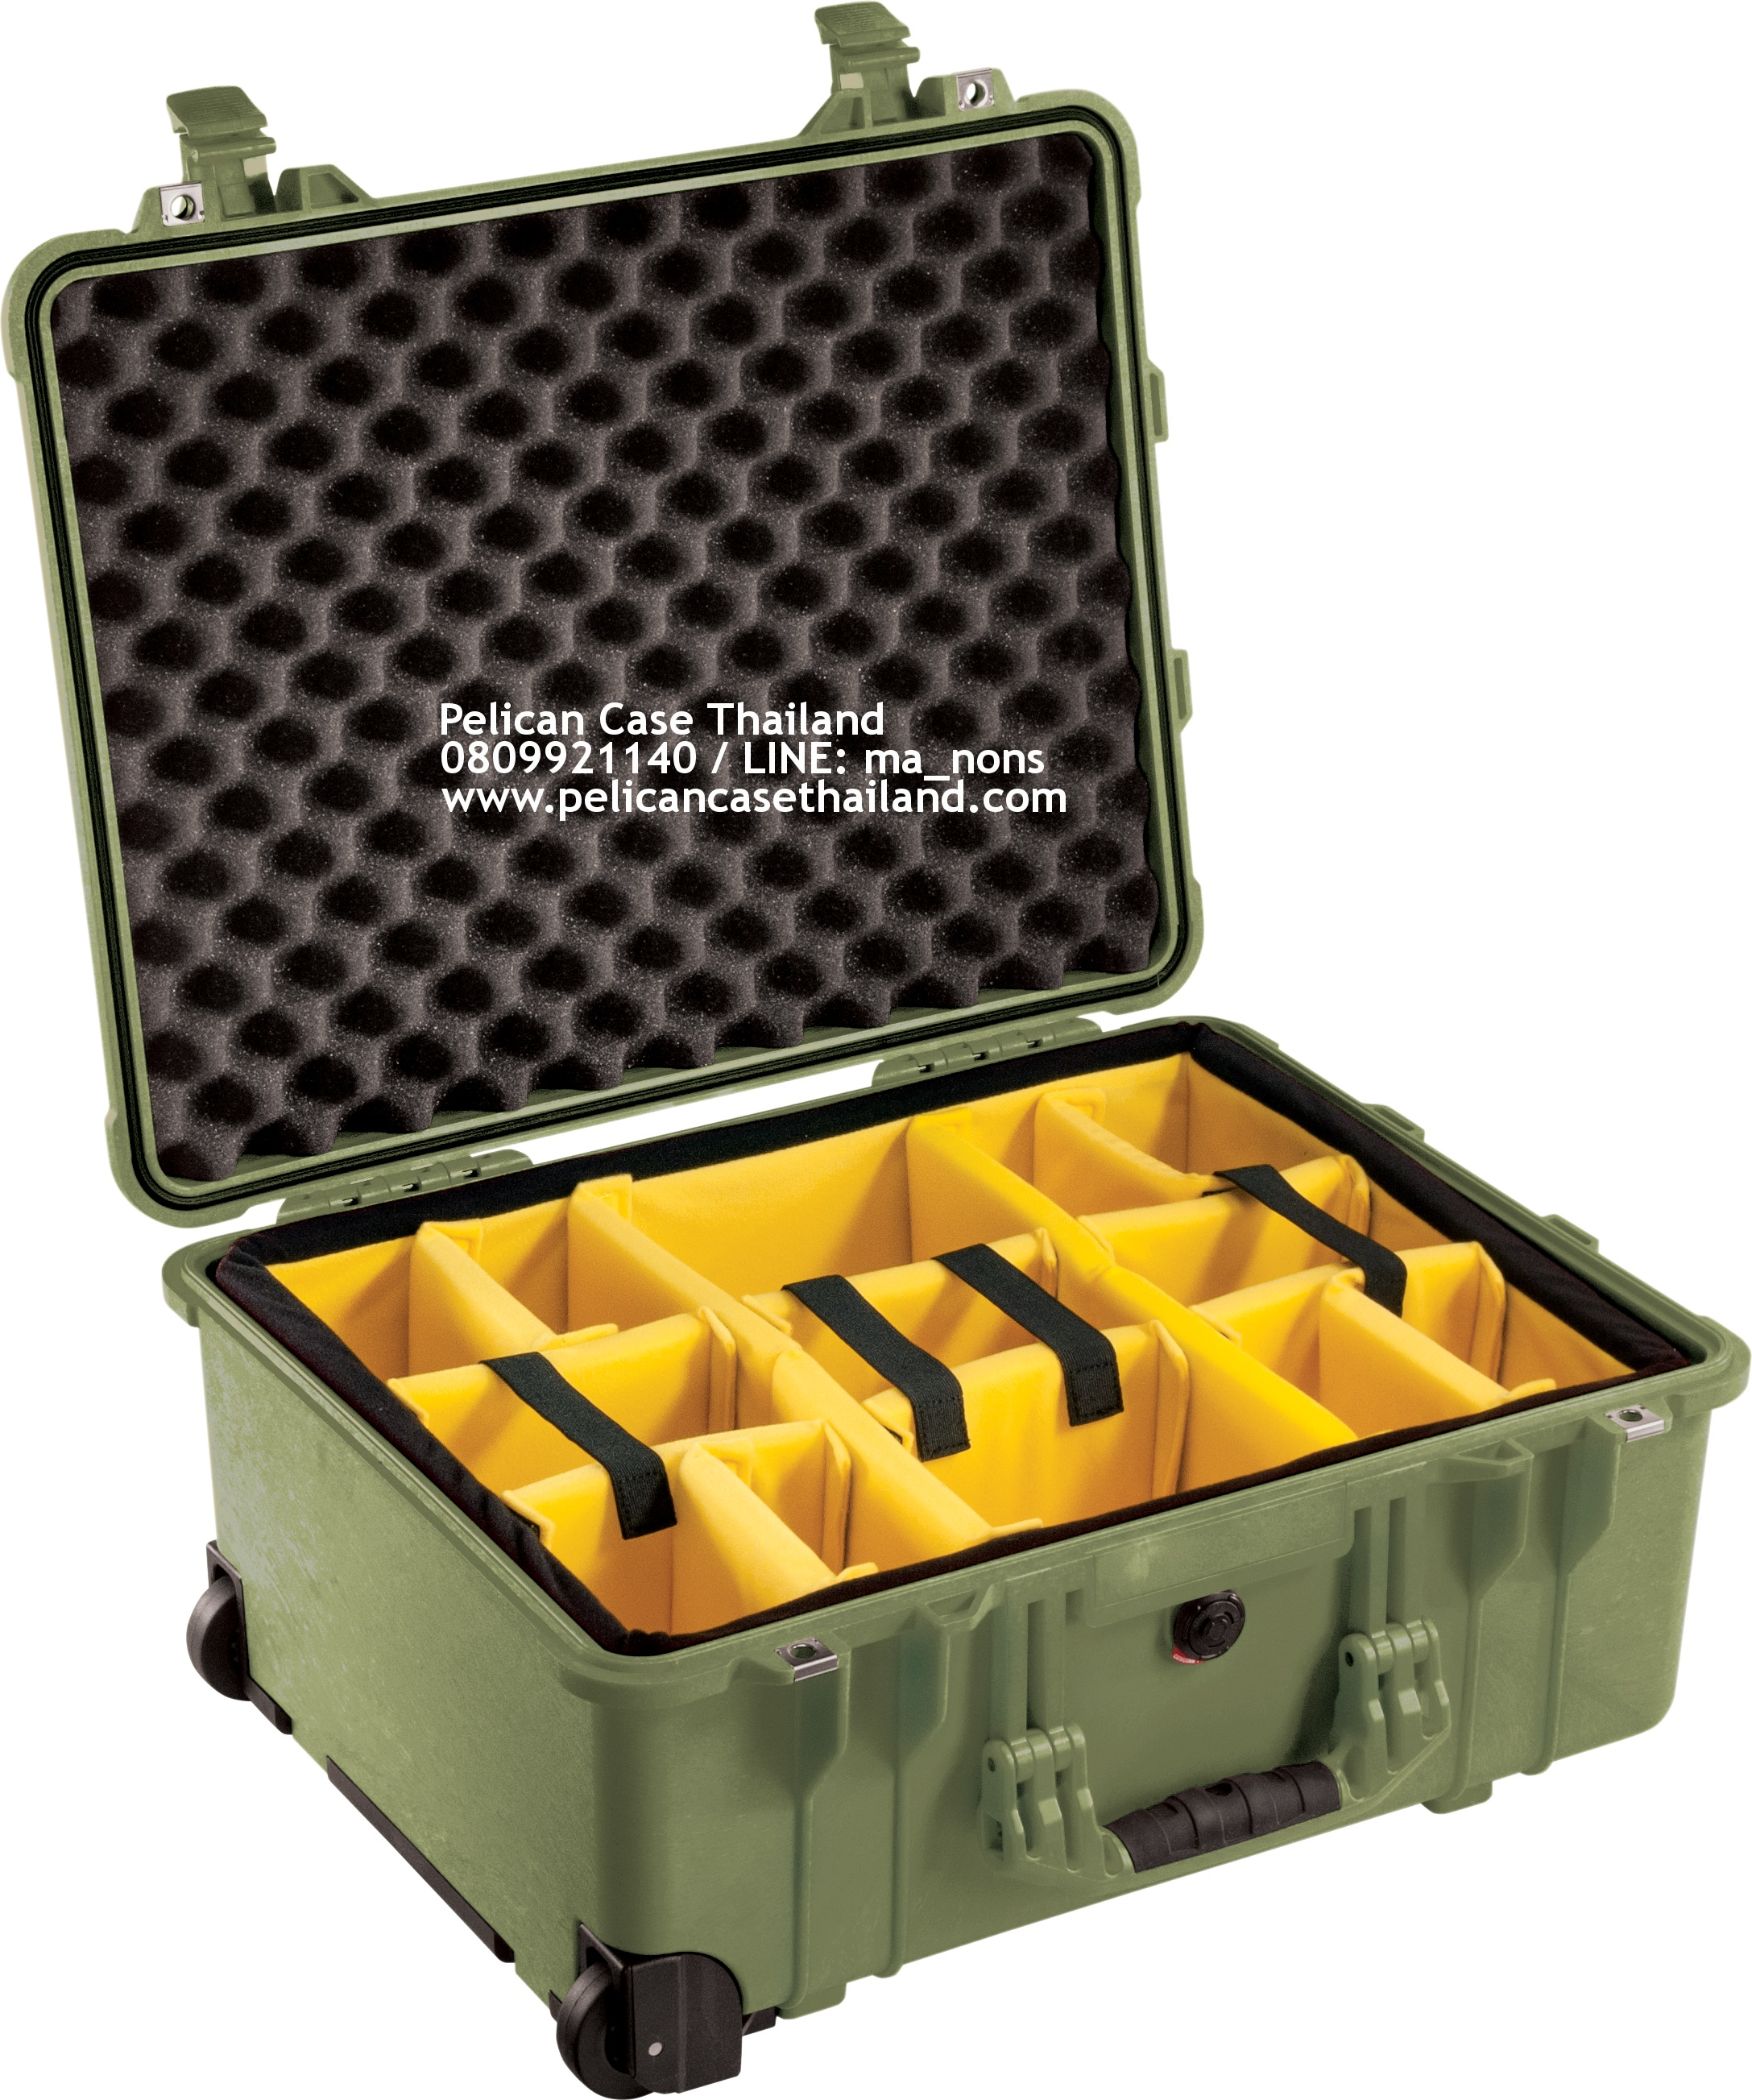 PELICAN™ 1560 with Padded Divider, OD Green (ช่องเเท้จากโรงงาน USA)